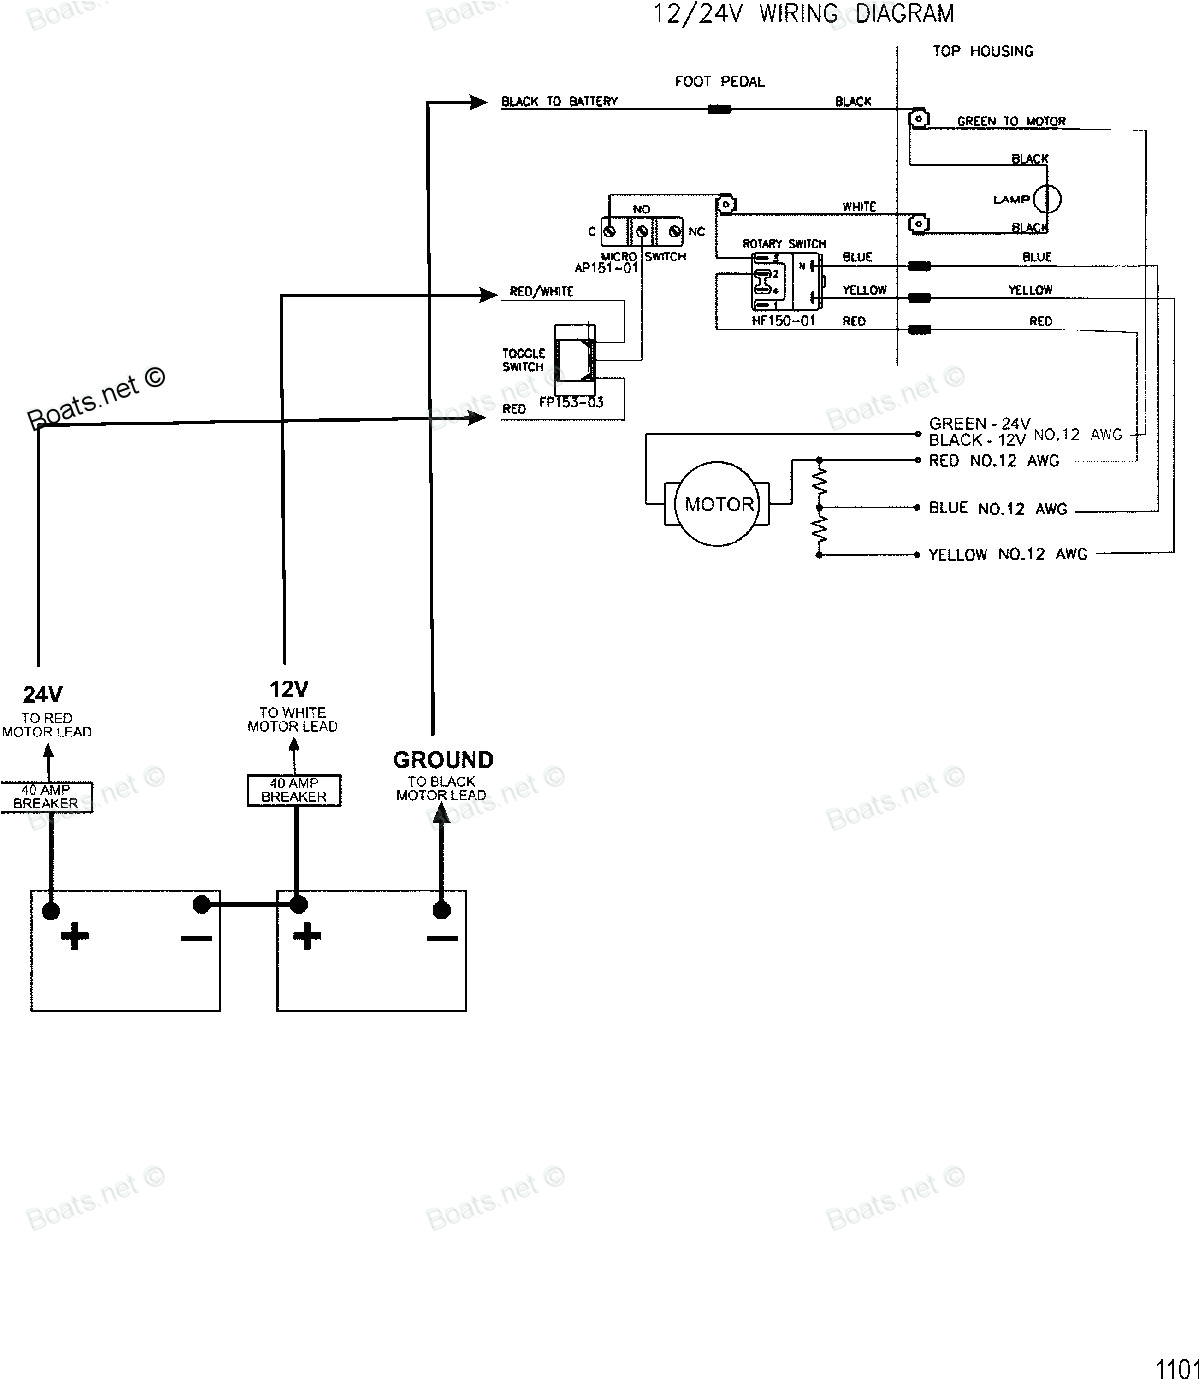 wiring diagram motorguide foot pedal free download my wiring diagramtrolling motor diagram here the foot control